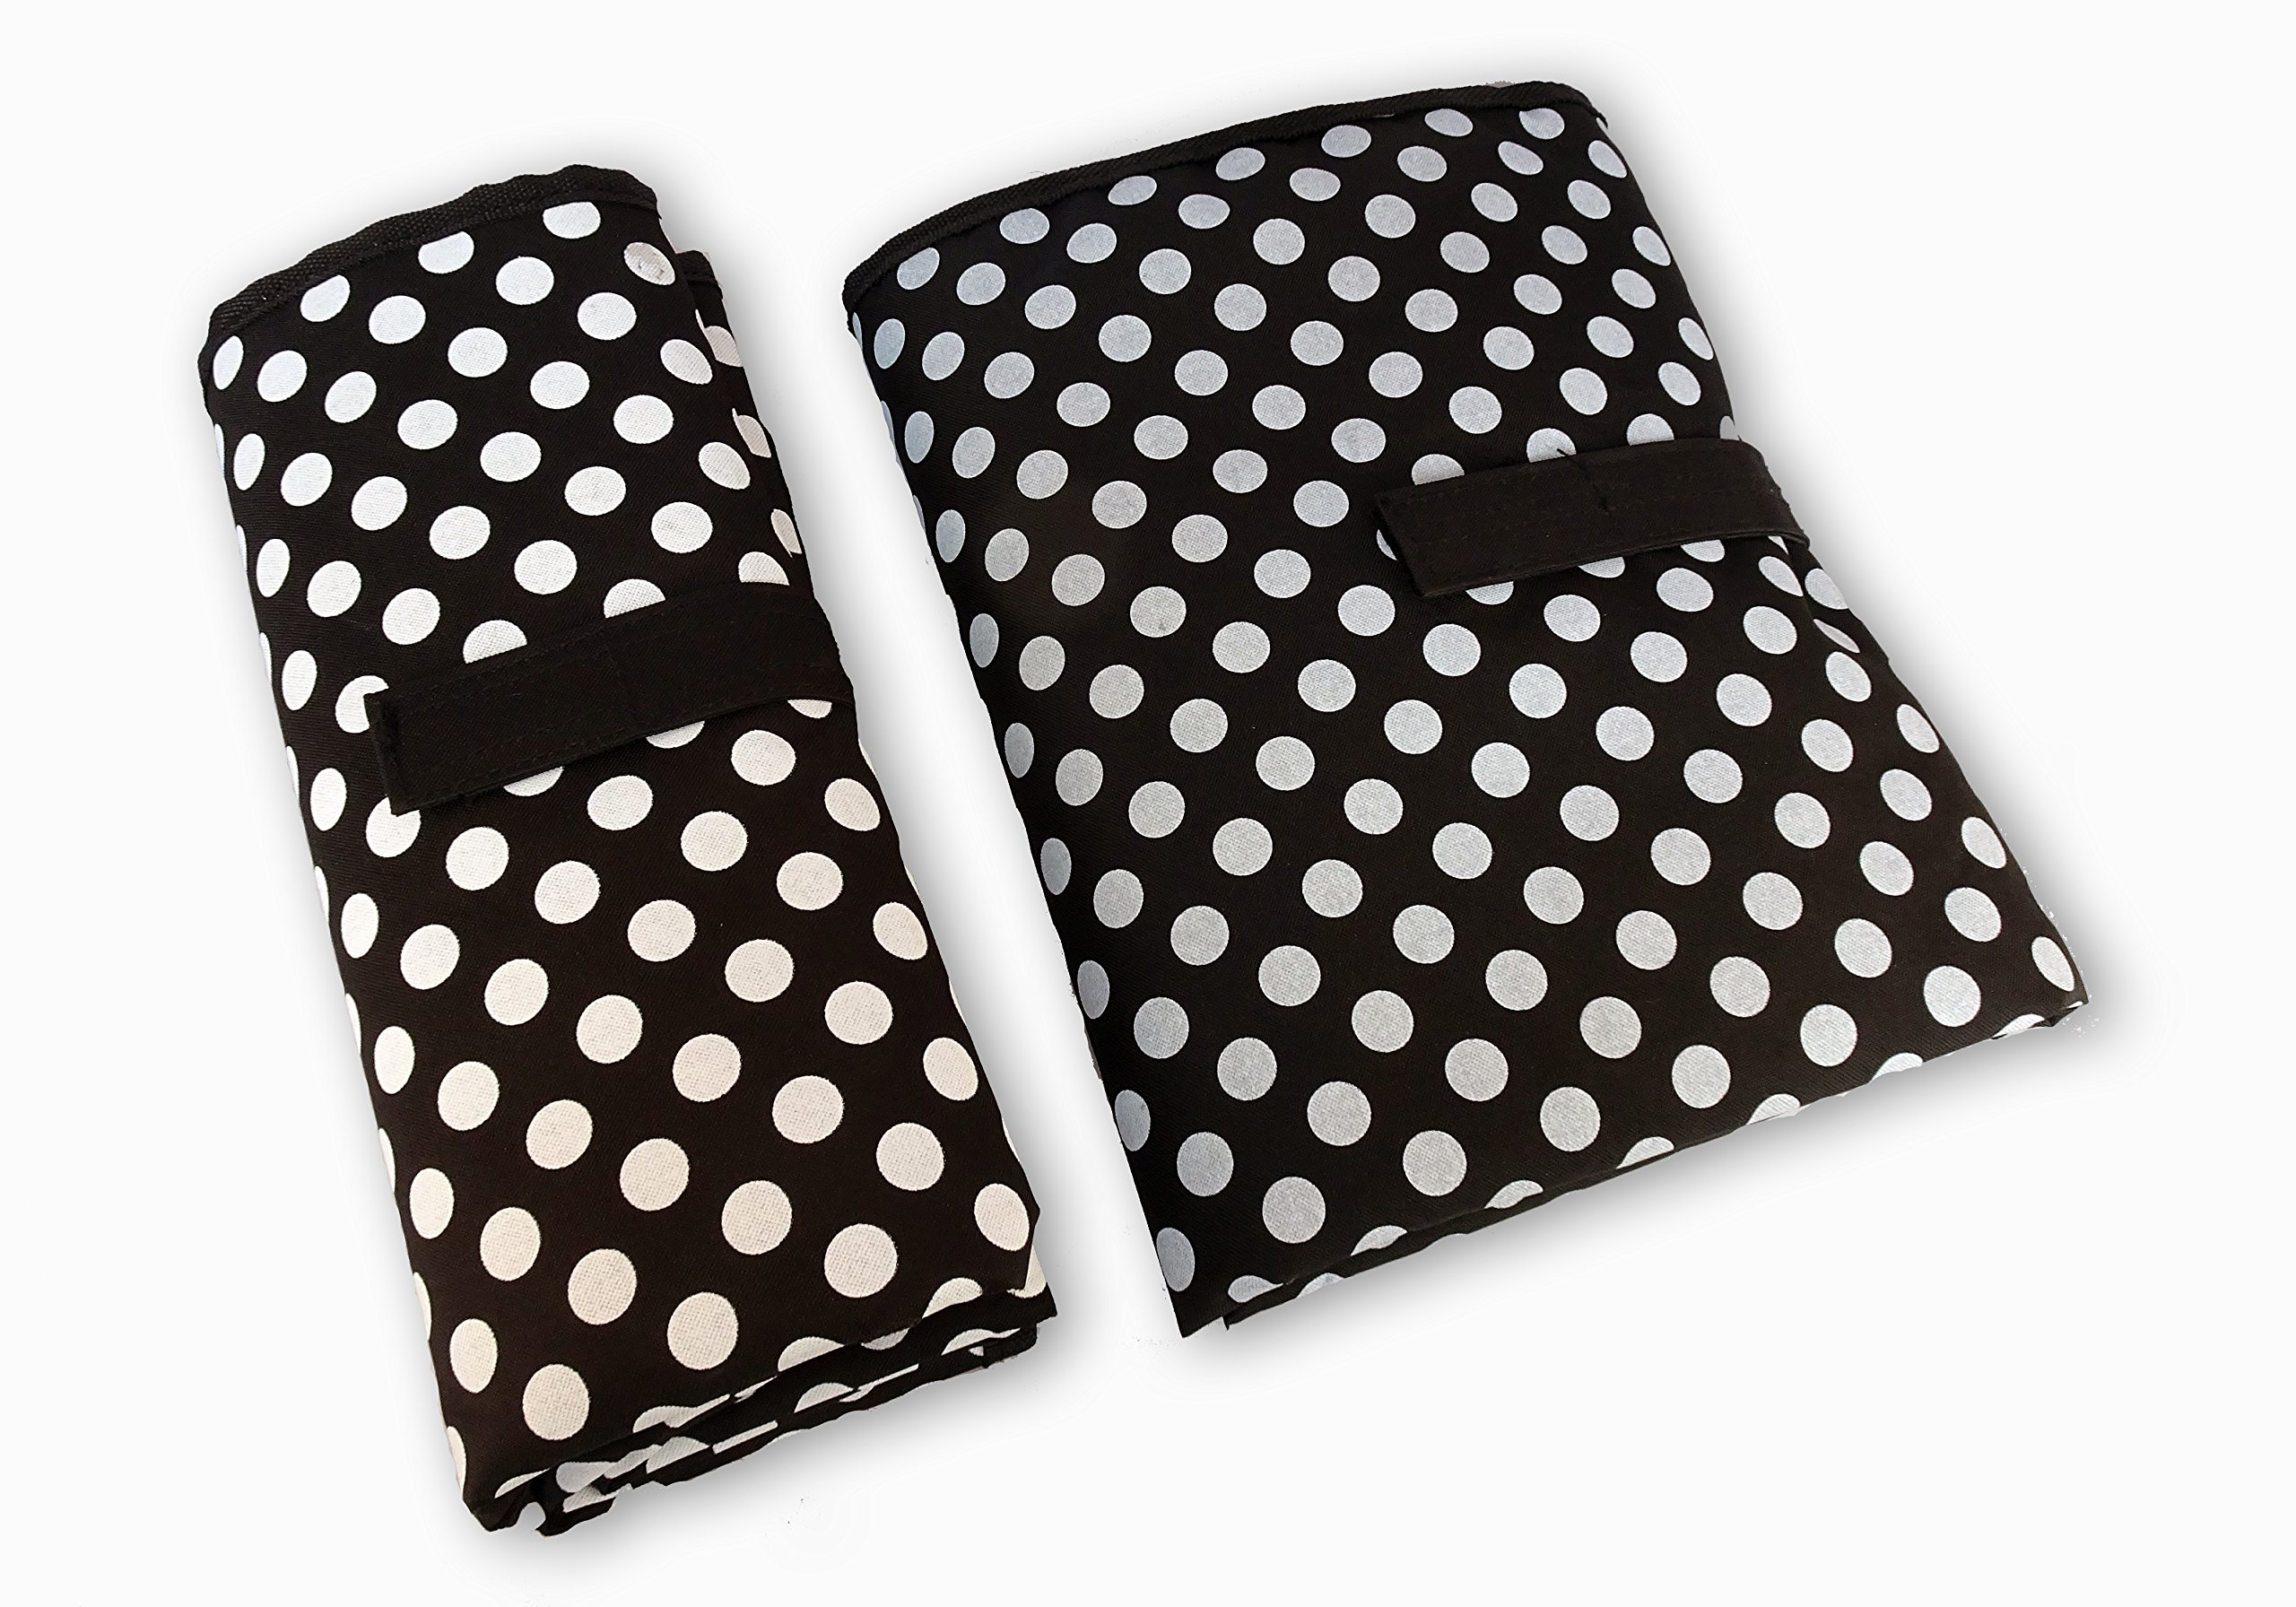 Waterproof Baby Diaper Changing Mat - One Hand Fold Grab & Go, Easy to Use, Large, Portable, Padded, Wipe Clean Travel Change Station Pad (Black with White Dots) by Contented Infant